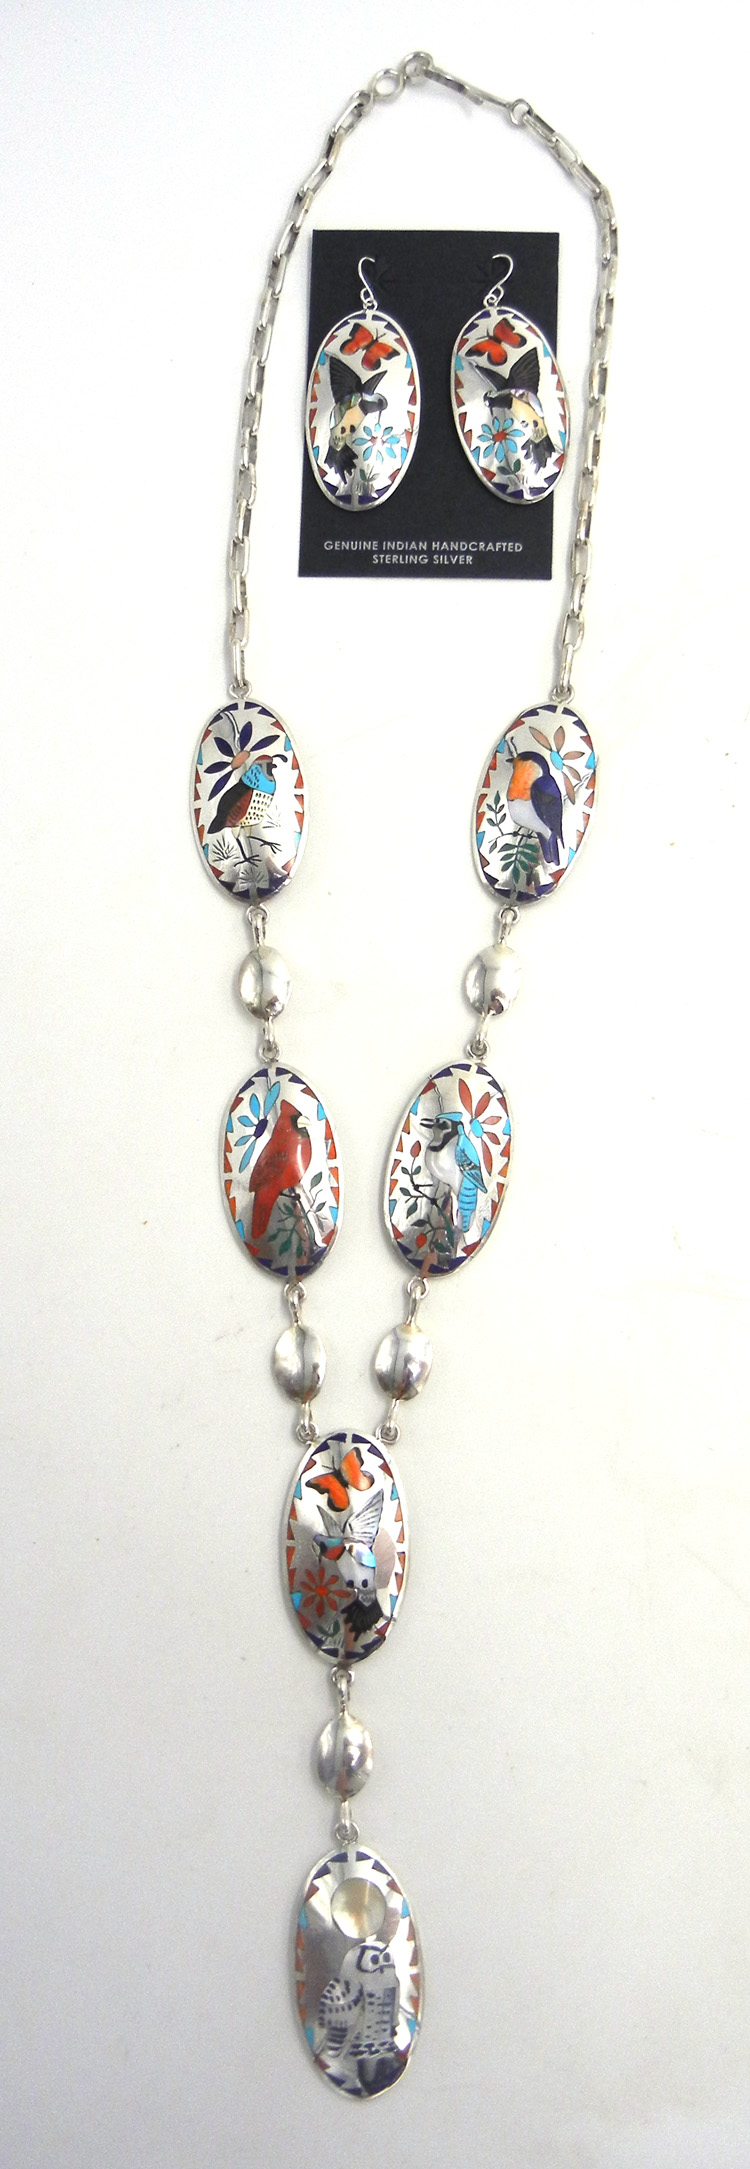 Zuni multi-stone mosaic inlay bird and sterling silver necklace and earring set by Quintin Quam